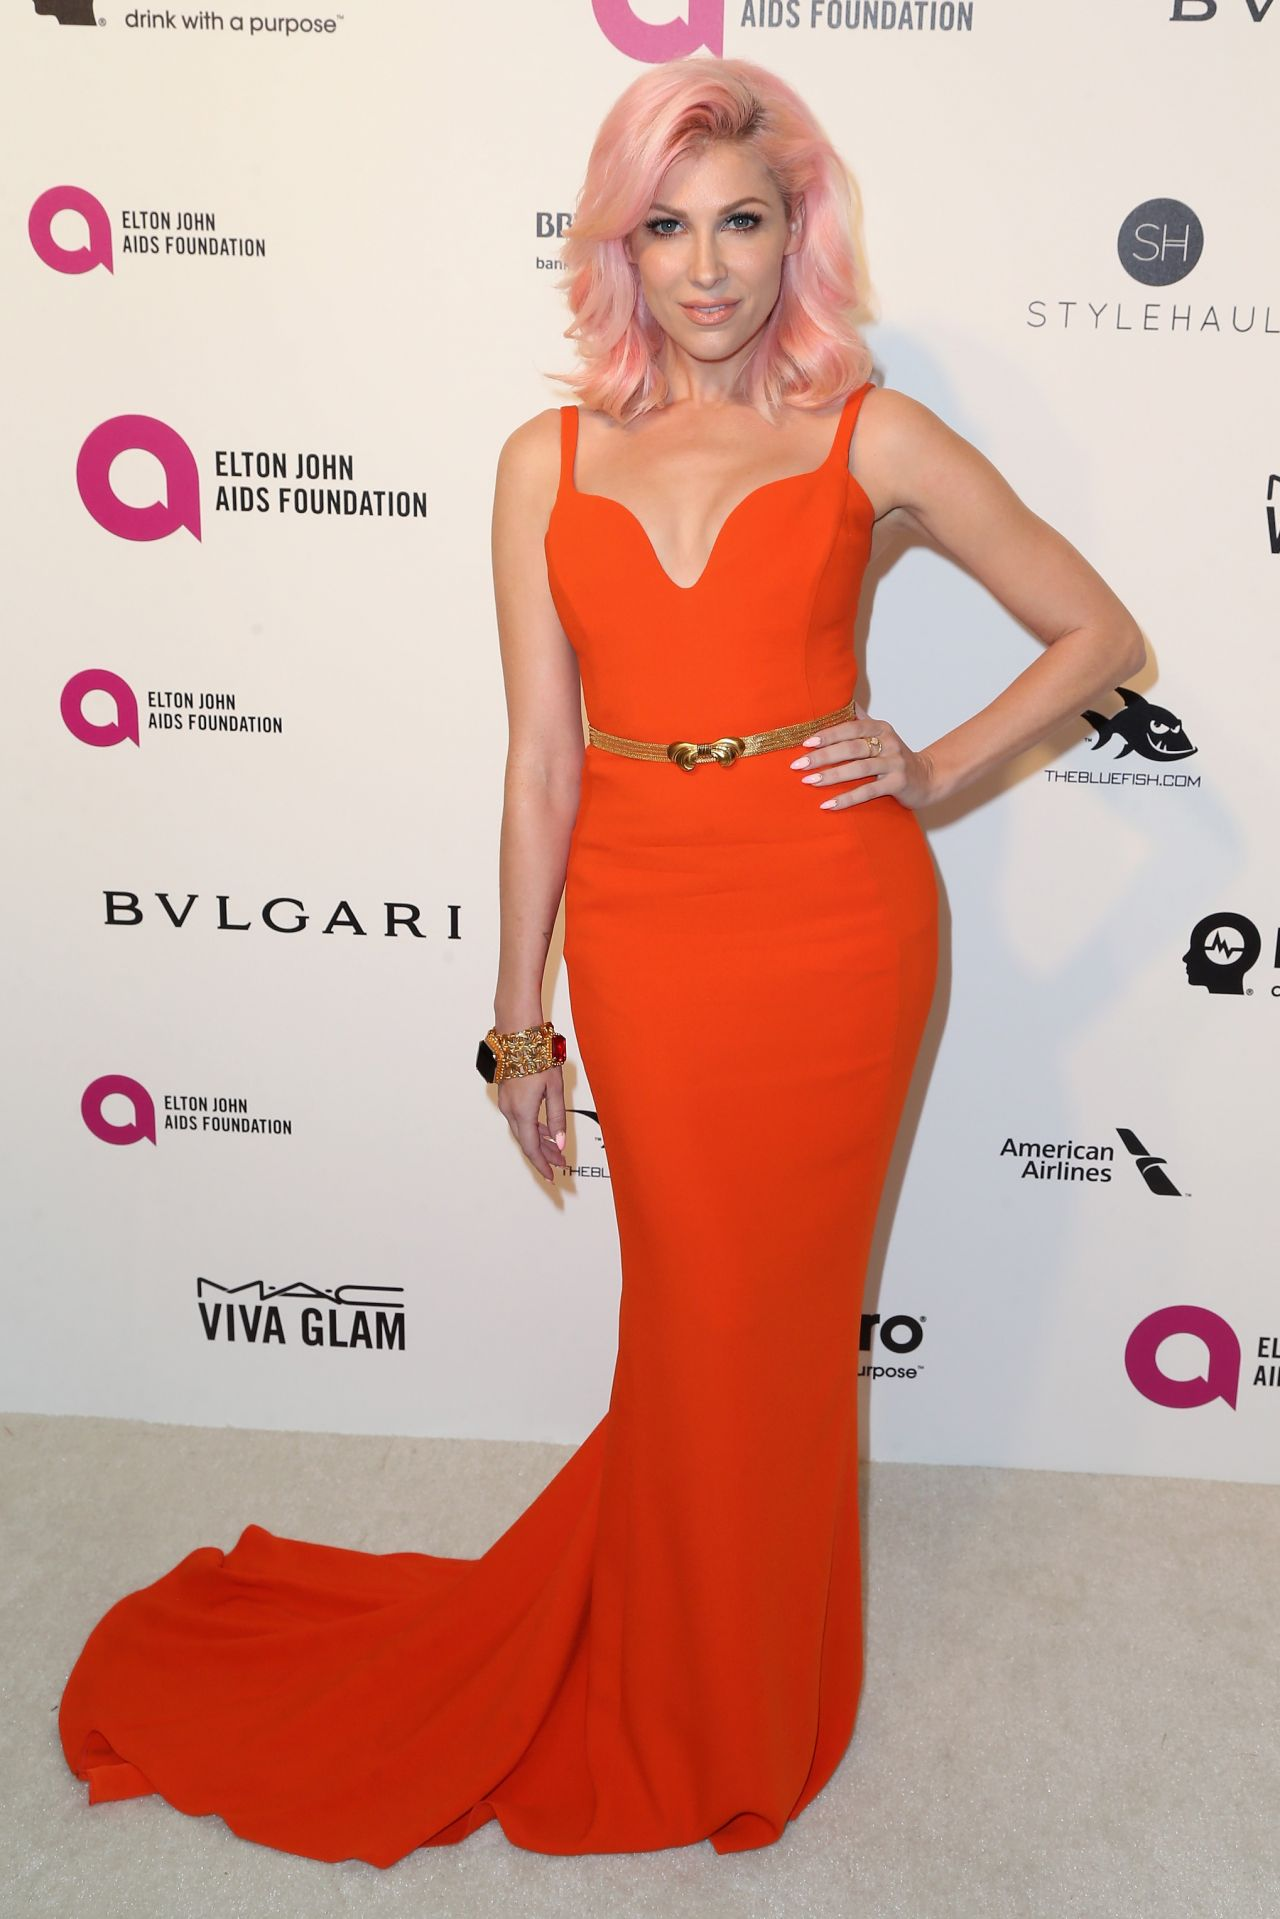 bonnie-mckee-2016-elton-john-aids-foundation-s-oscar-viewing-party-in-west-hollywood-ca-3